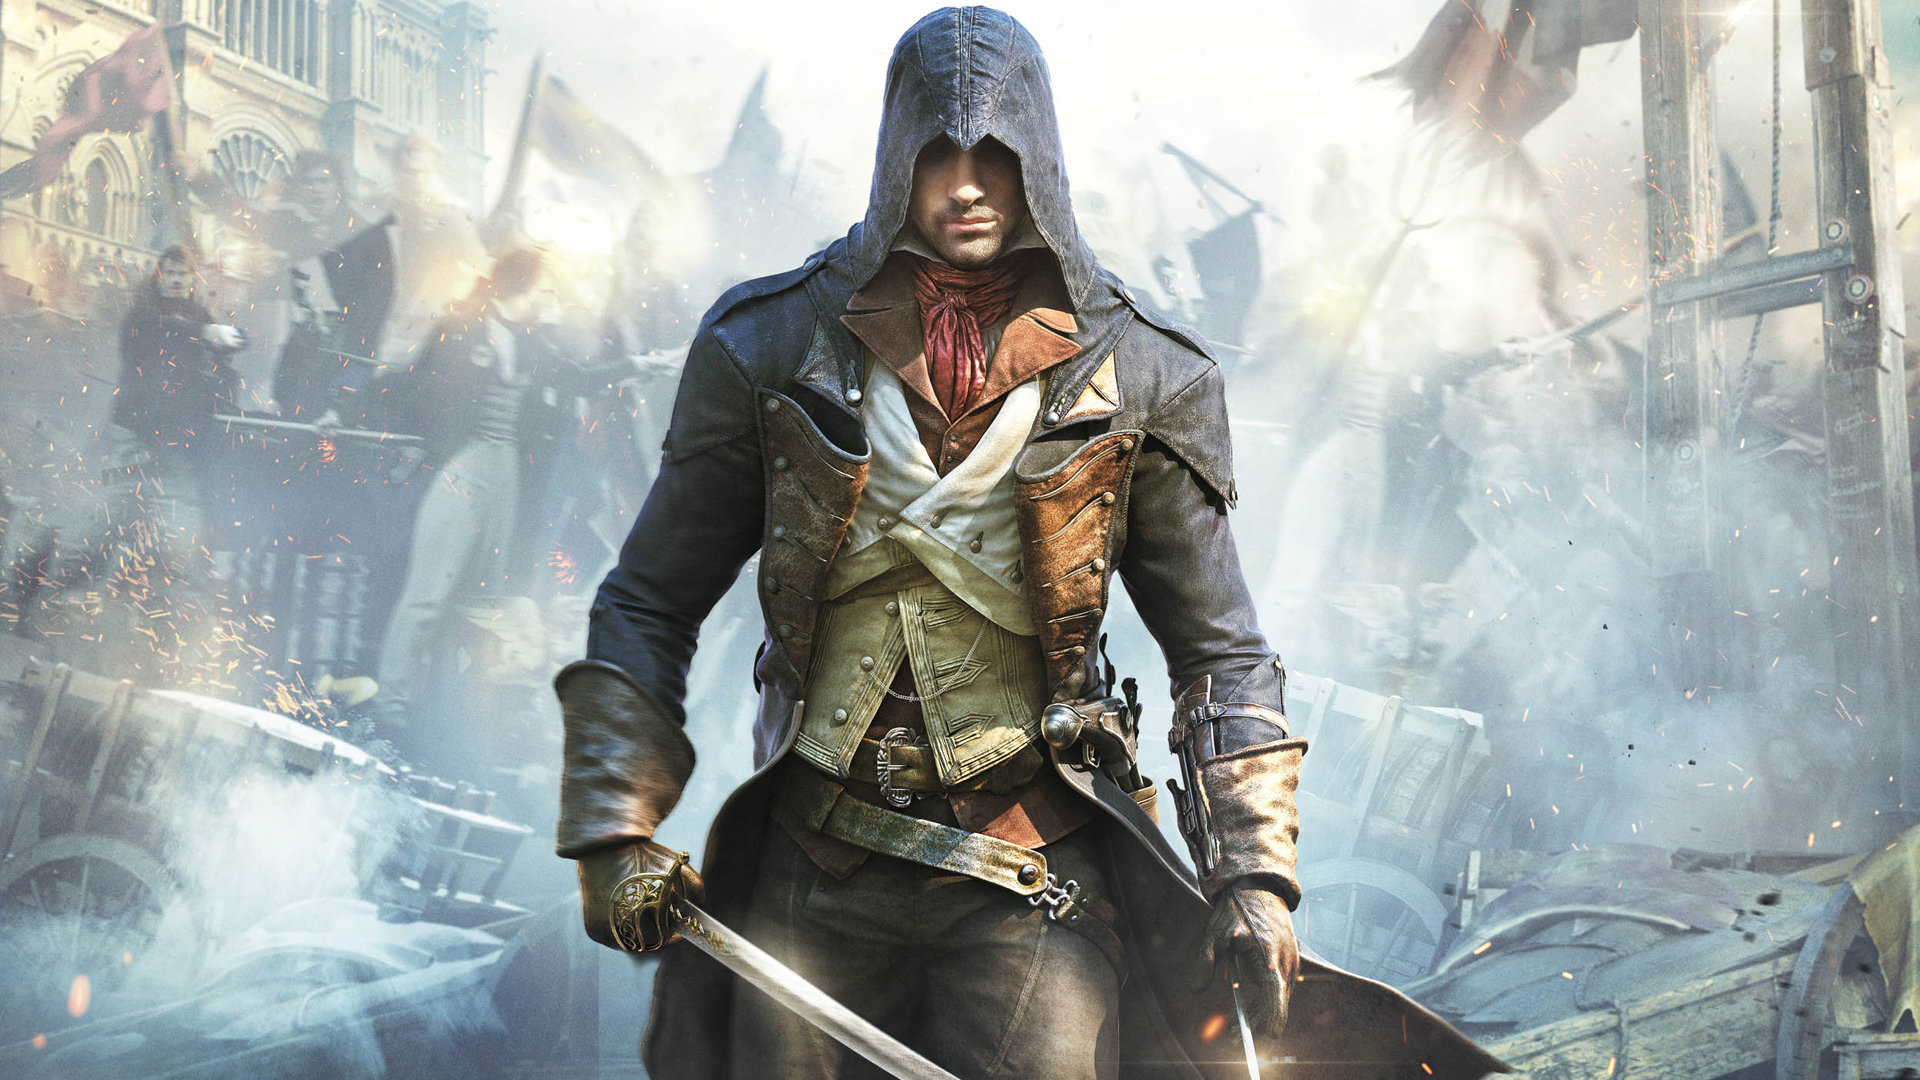 Awesome Assassins Creed Unity Free Wallpaper ID229448 For Full Hd 1080p Computer